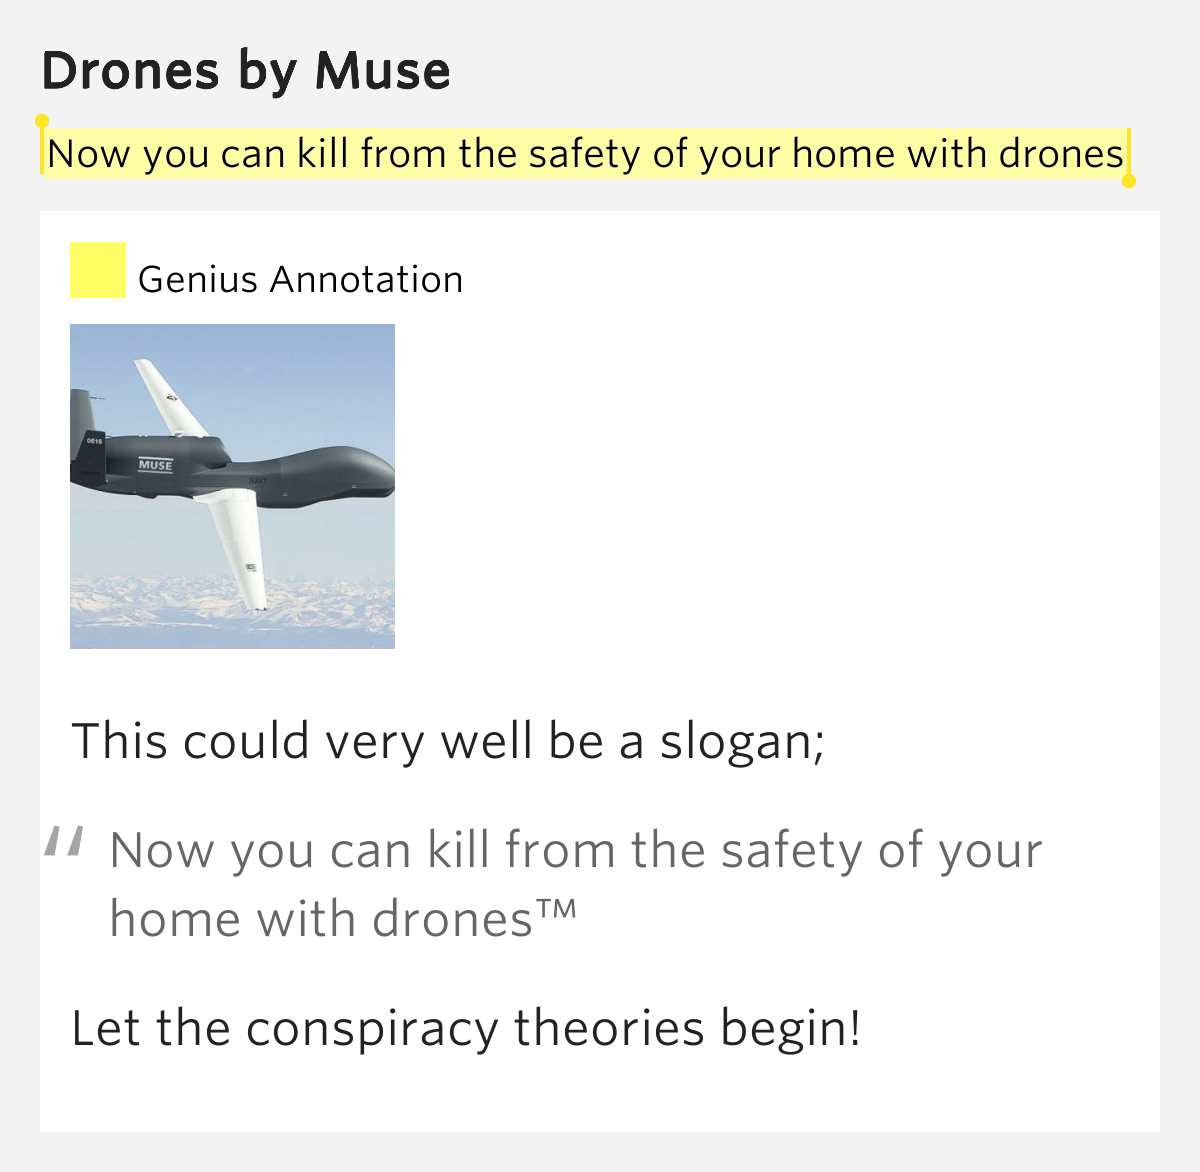 now you can kill from the safety of your home with drones